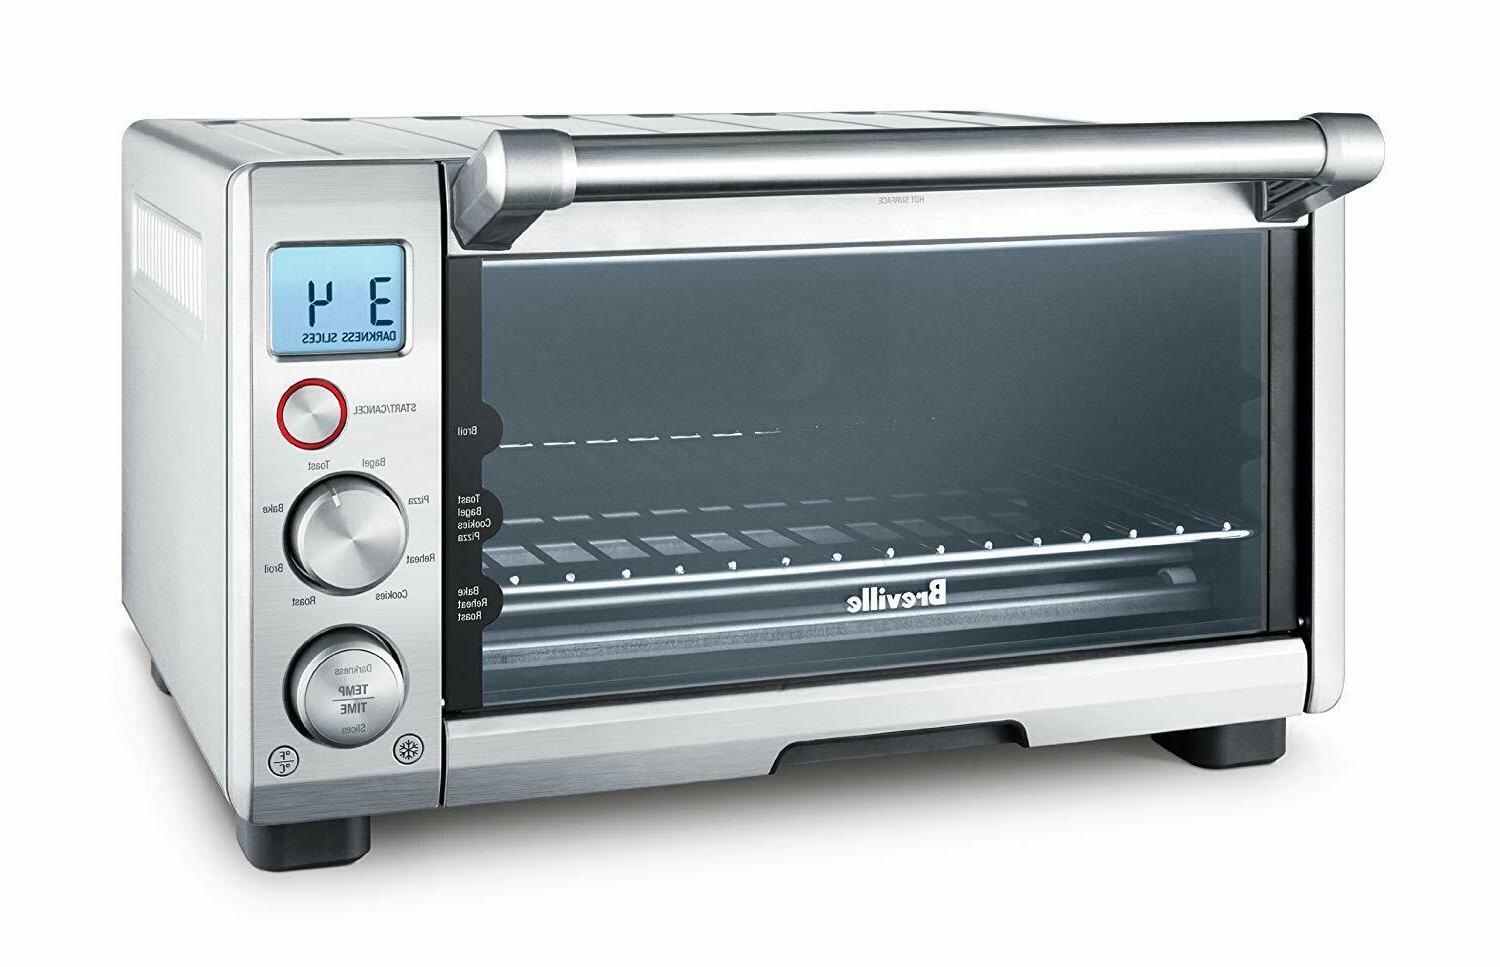 bov650xl counter top oven silver